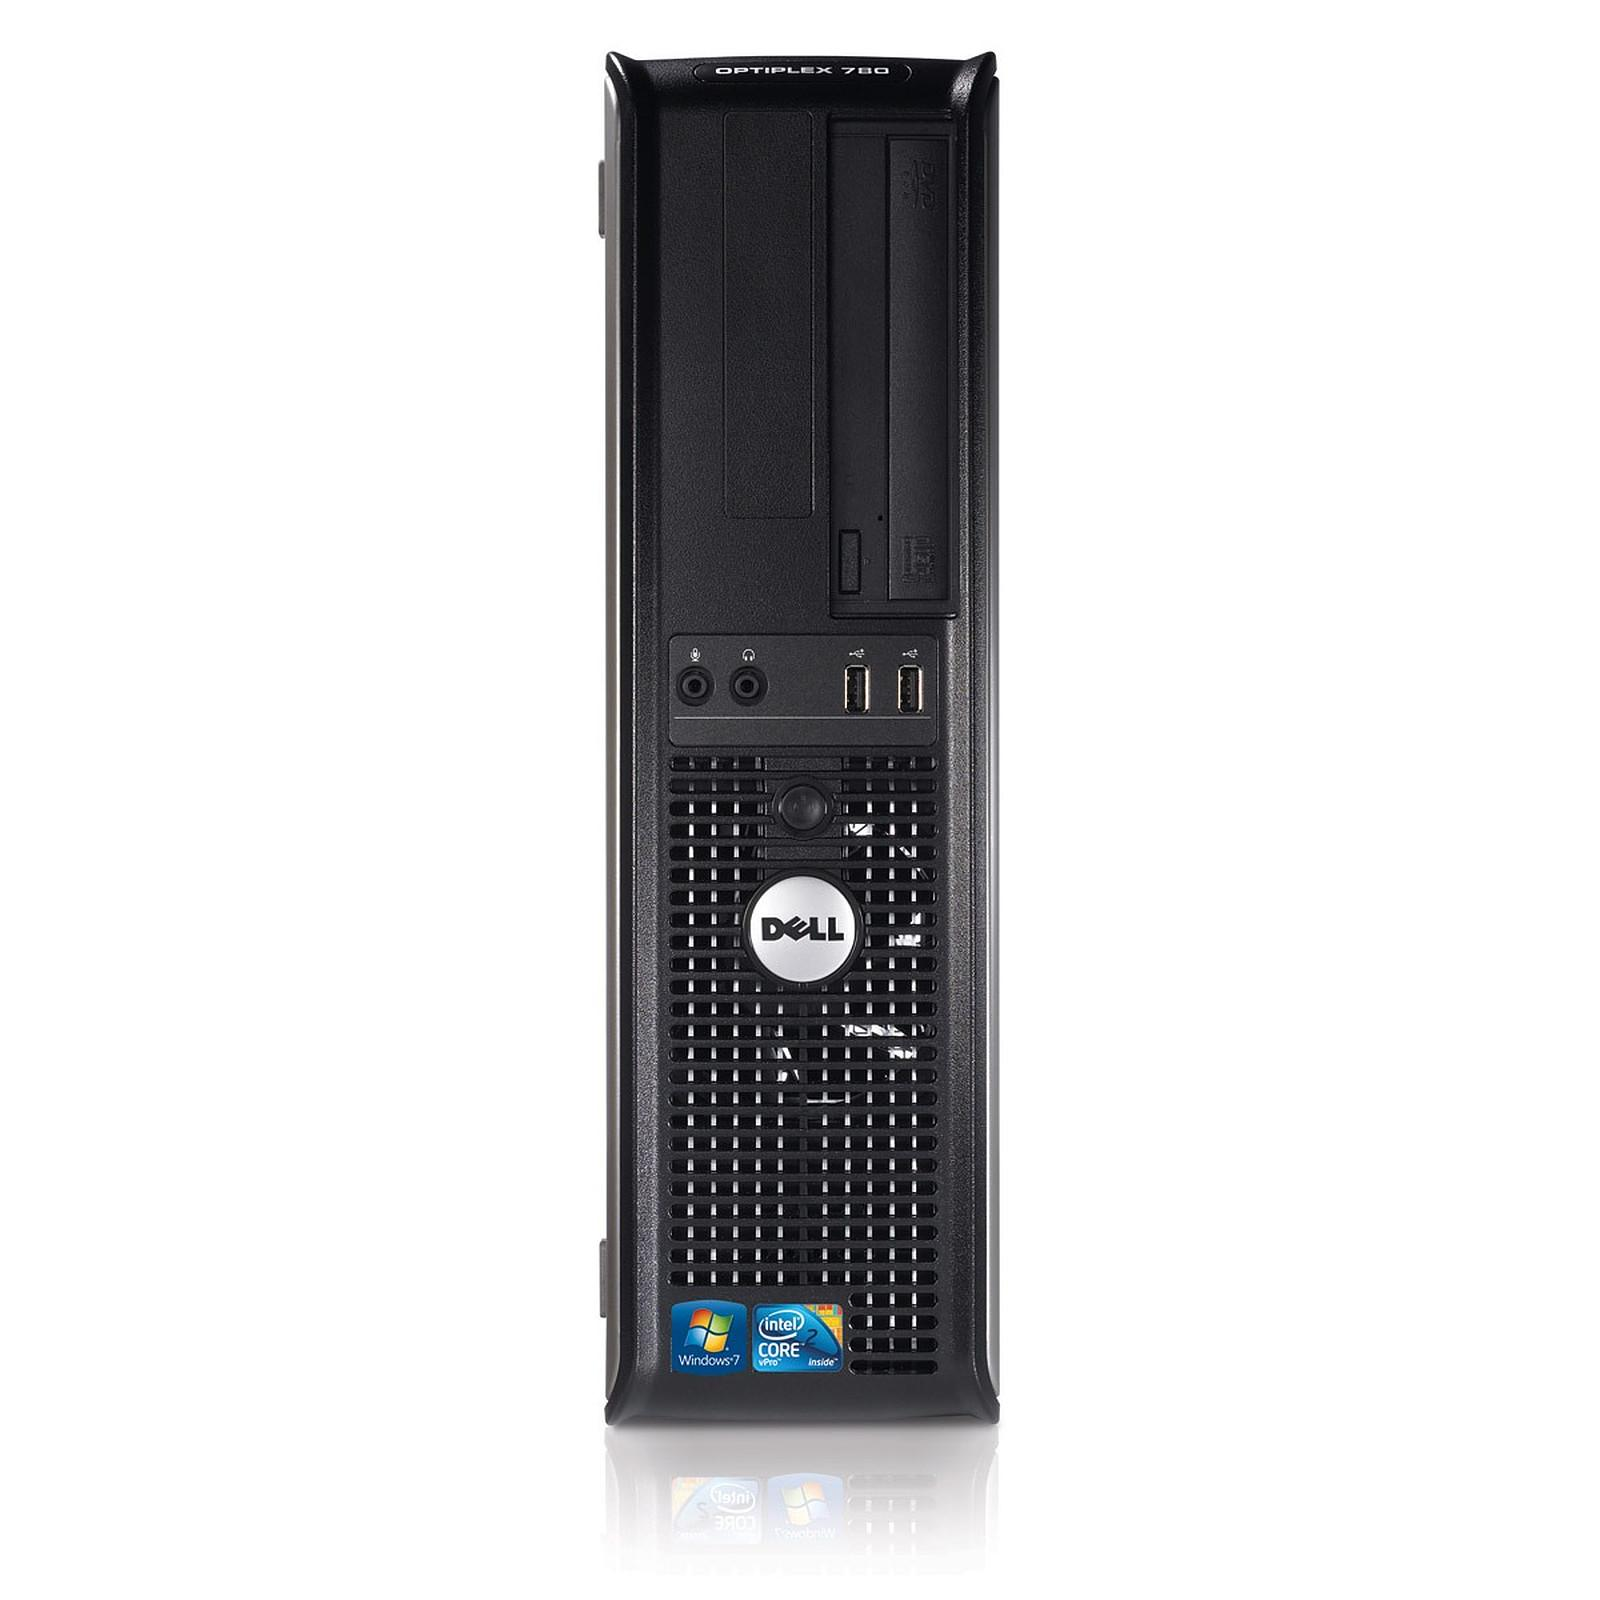 Dell OptiPlex 780 DT Core 2 Duo 3 GHz - HDD 2 To RAM 4 Go